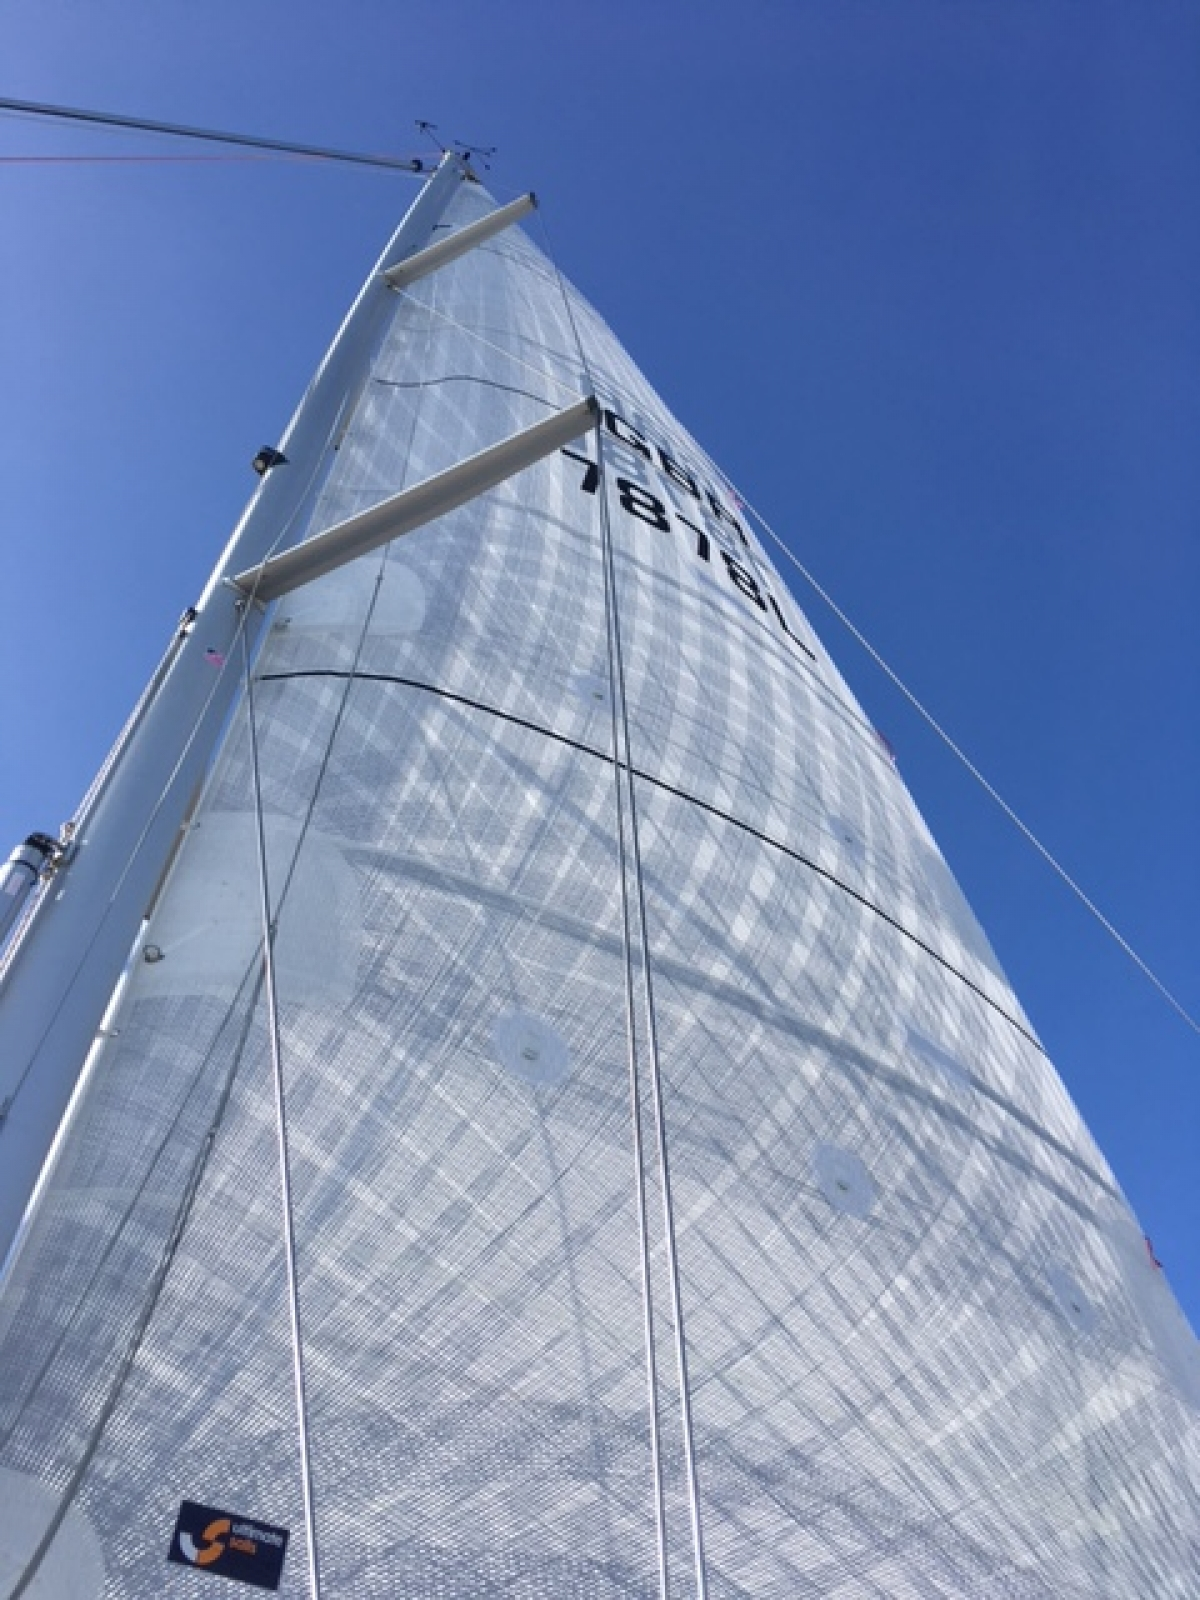 Be consistent with Ultimate Sails